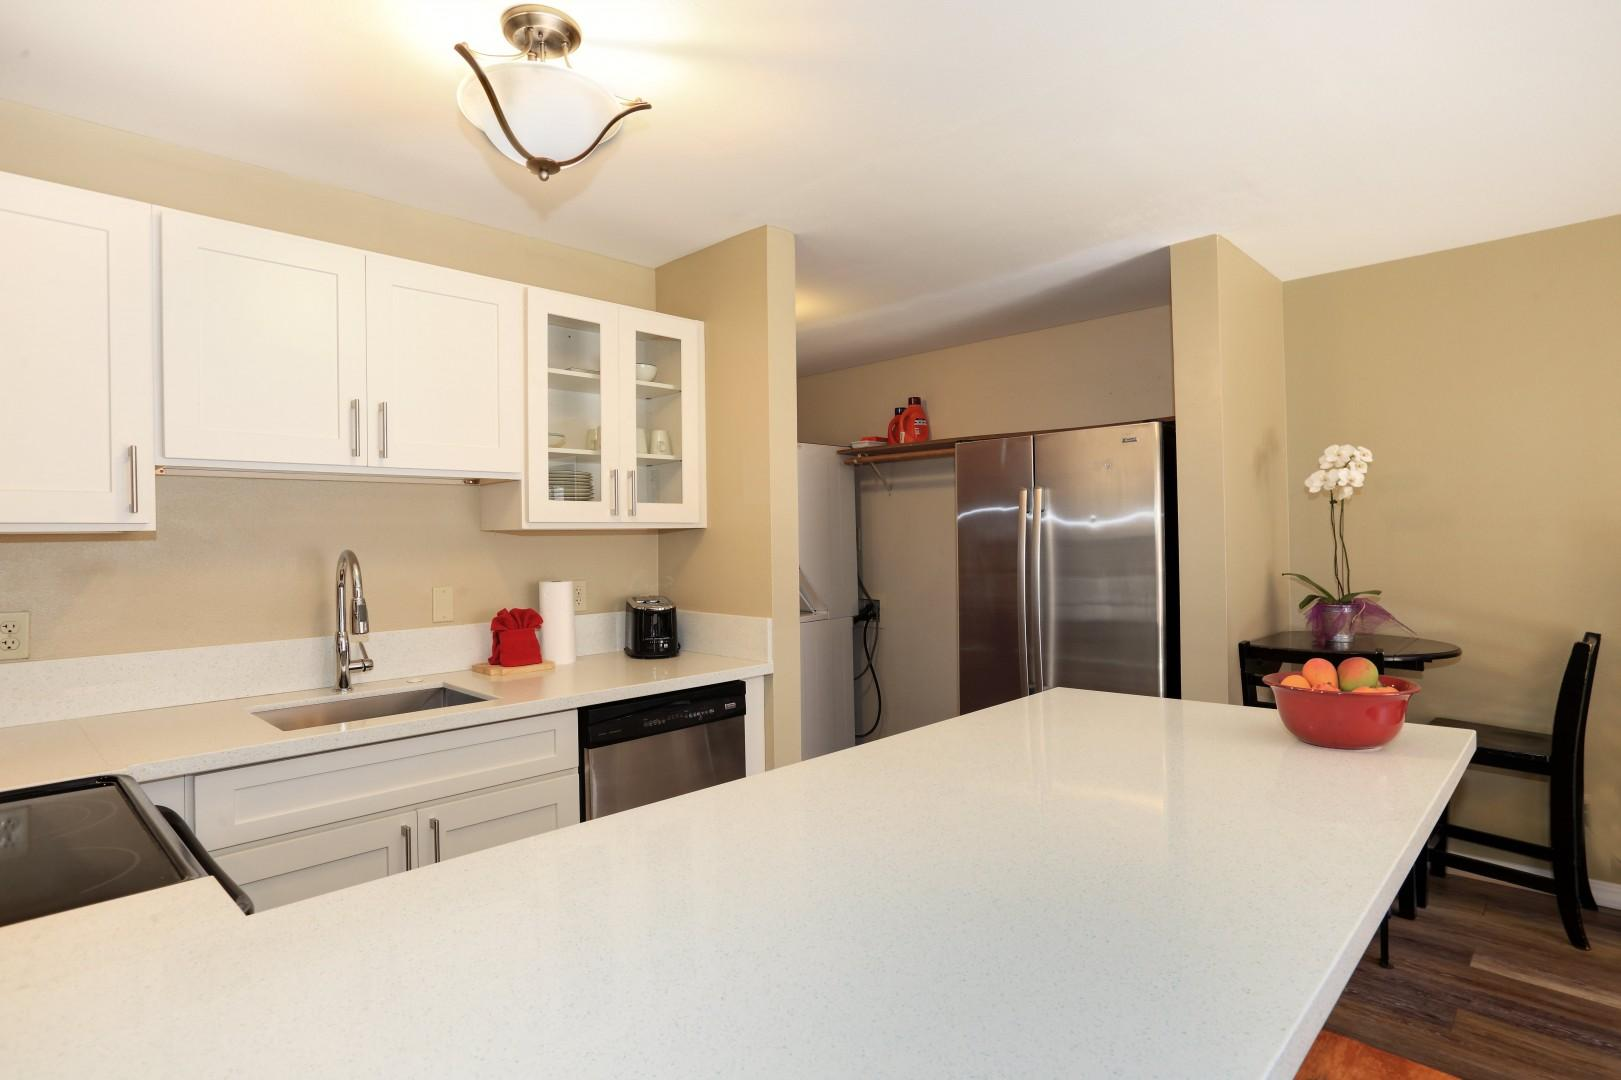 Large countertop with bar stools to enjoy a meal before going to the beach-min